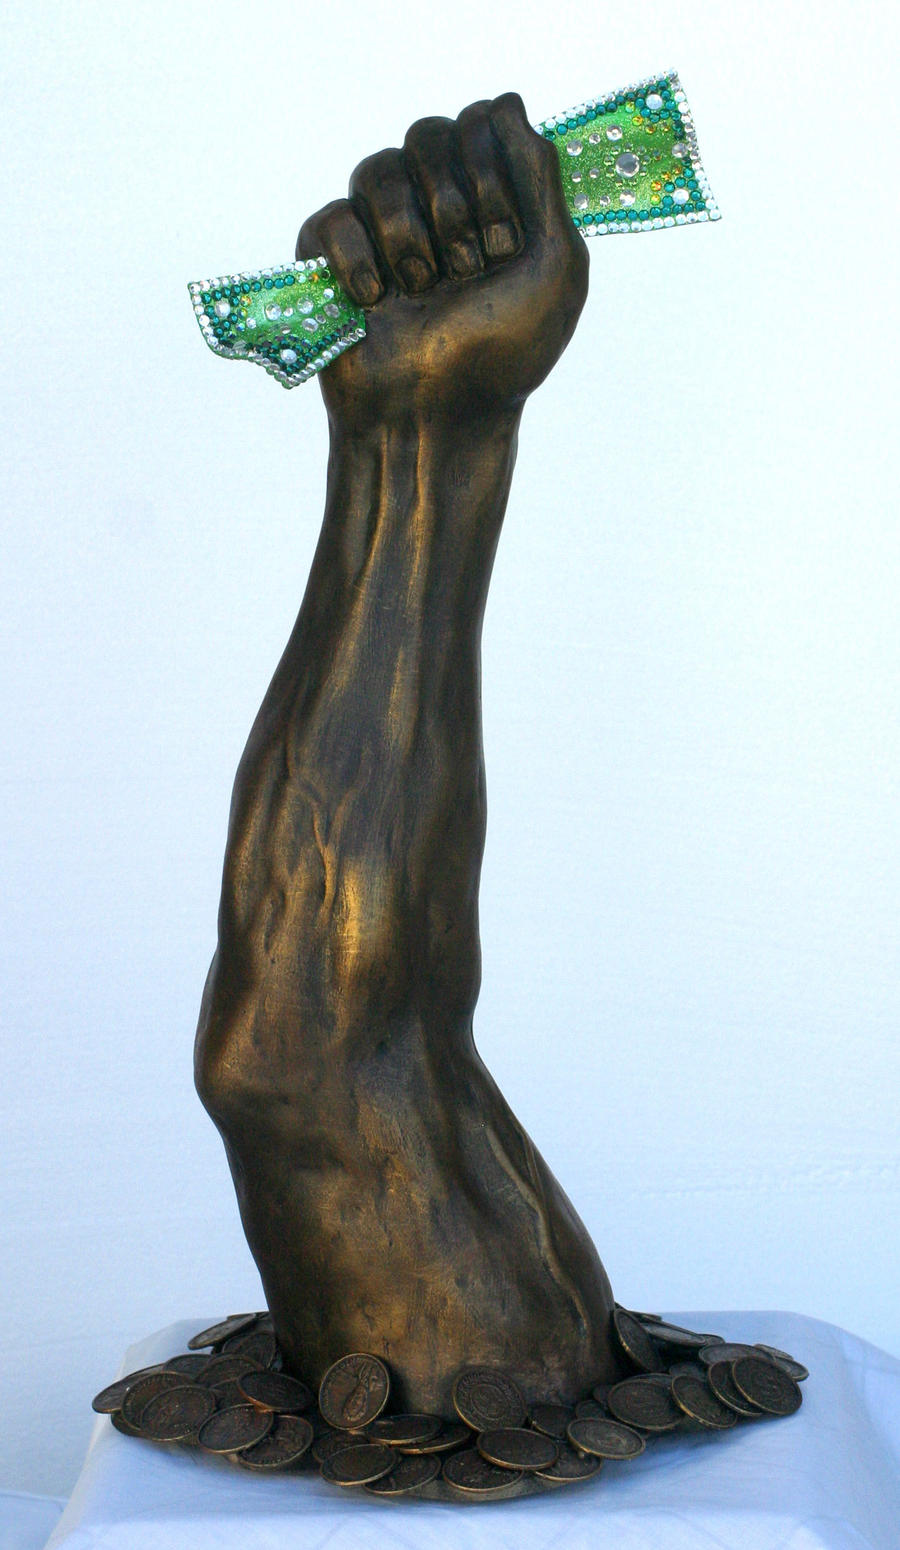 The Arm of capitalism by TimBakerFX